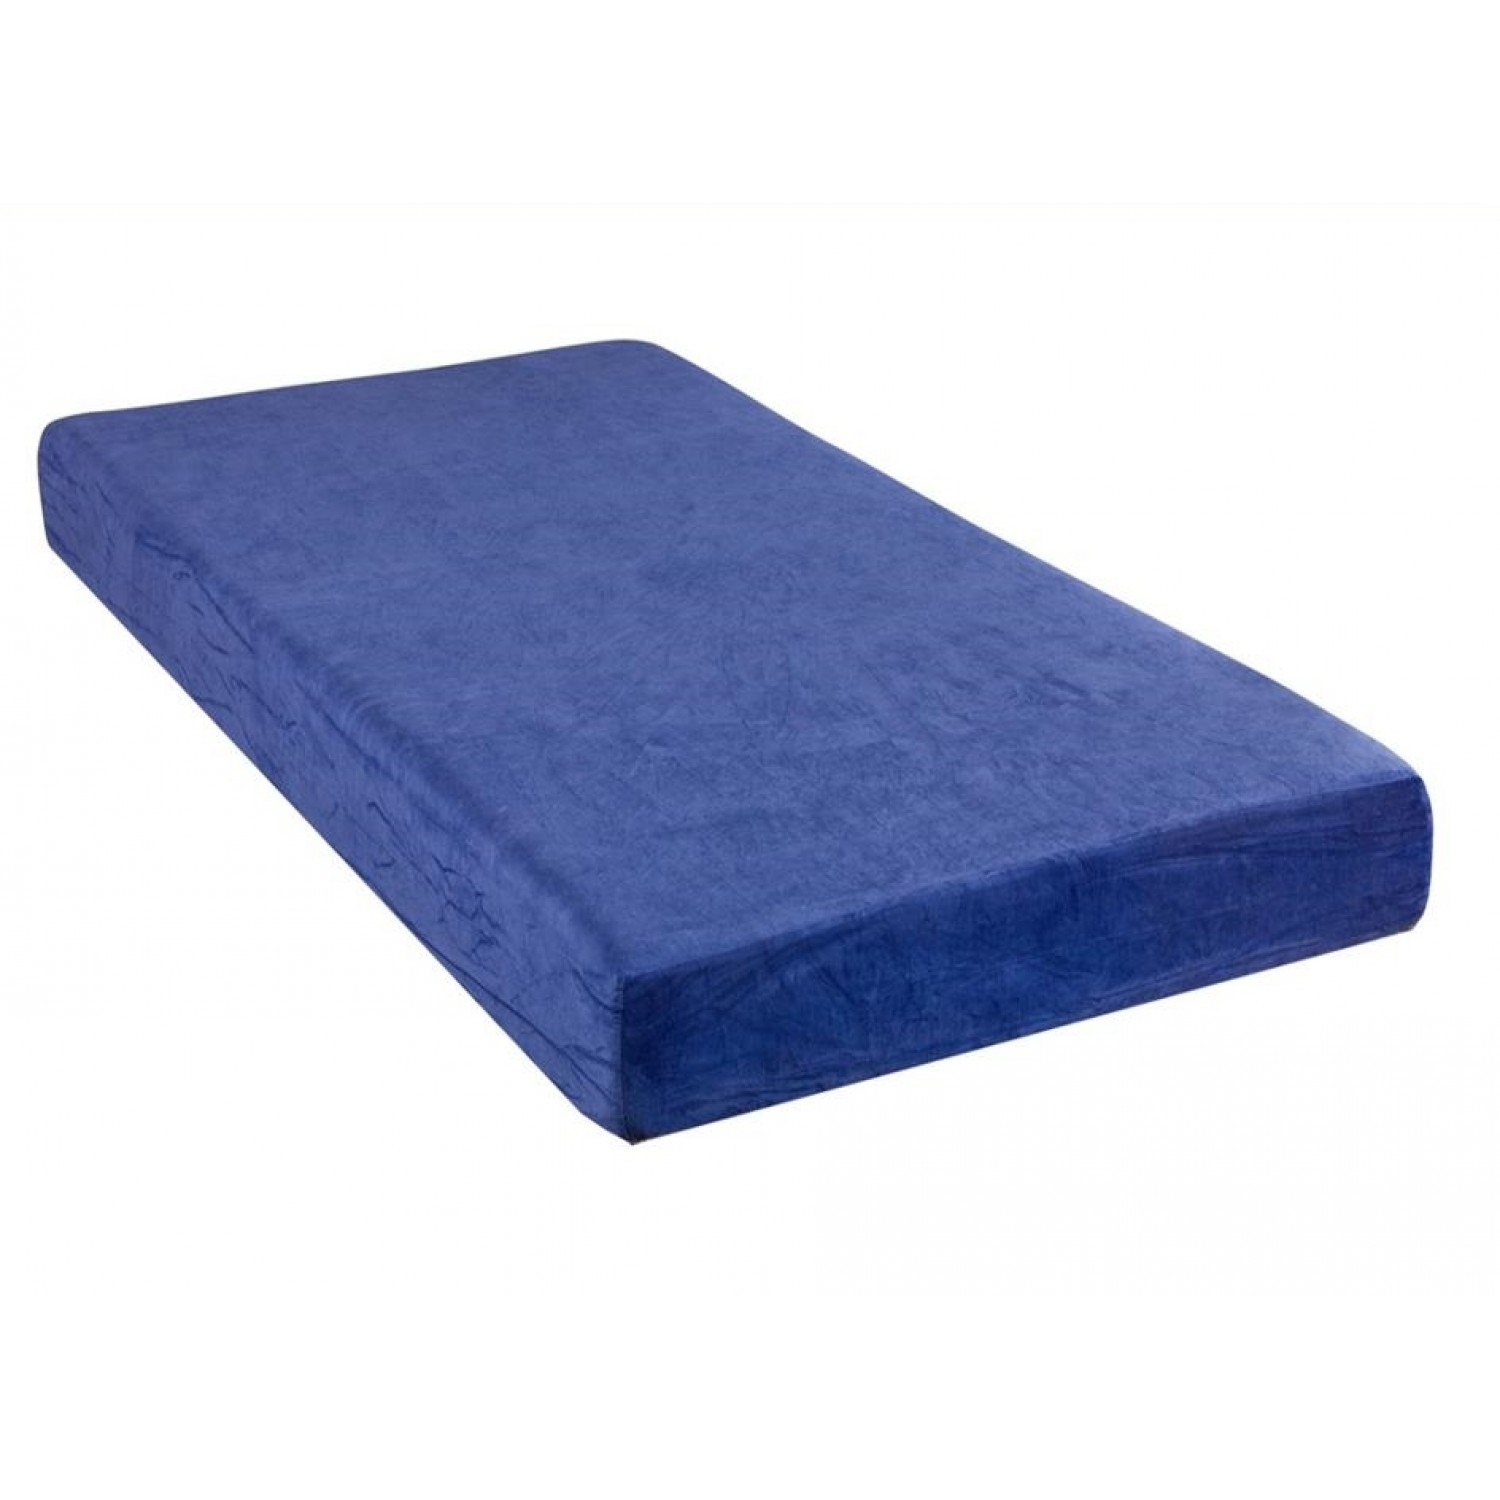 Kids Blue 10cm Reflex Memory Foam (Bunk OR Bed) Mattress